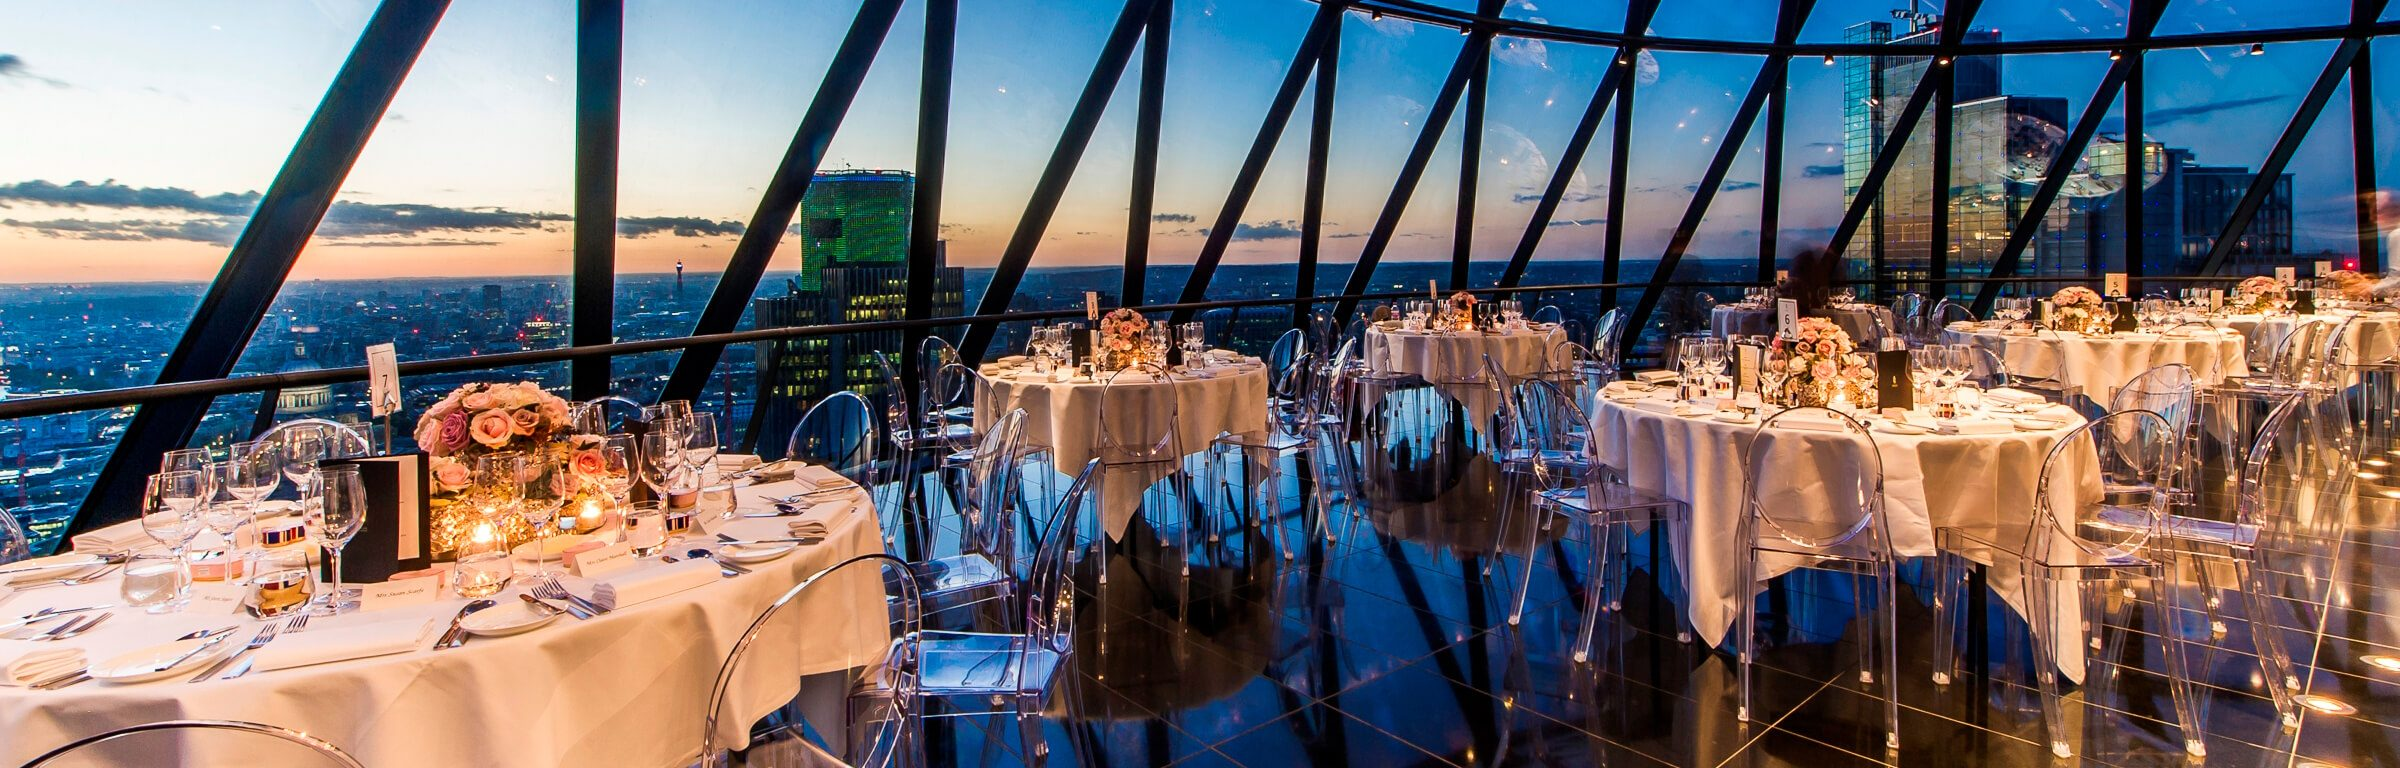 Birthday Parties - Searcys at the Gherkin